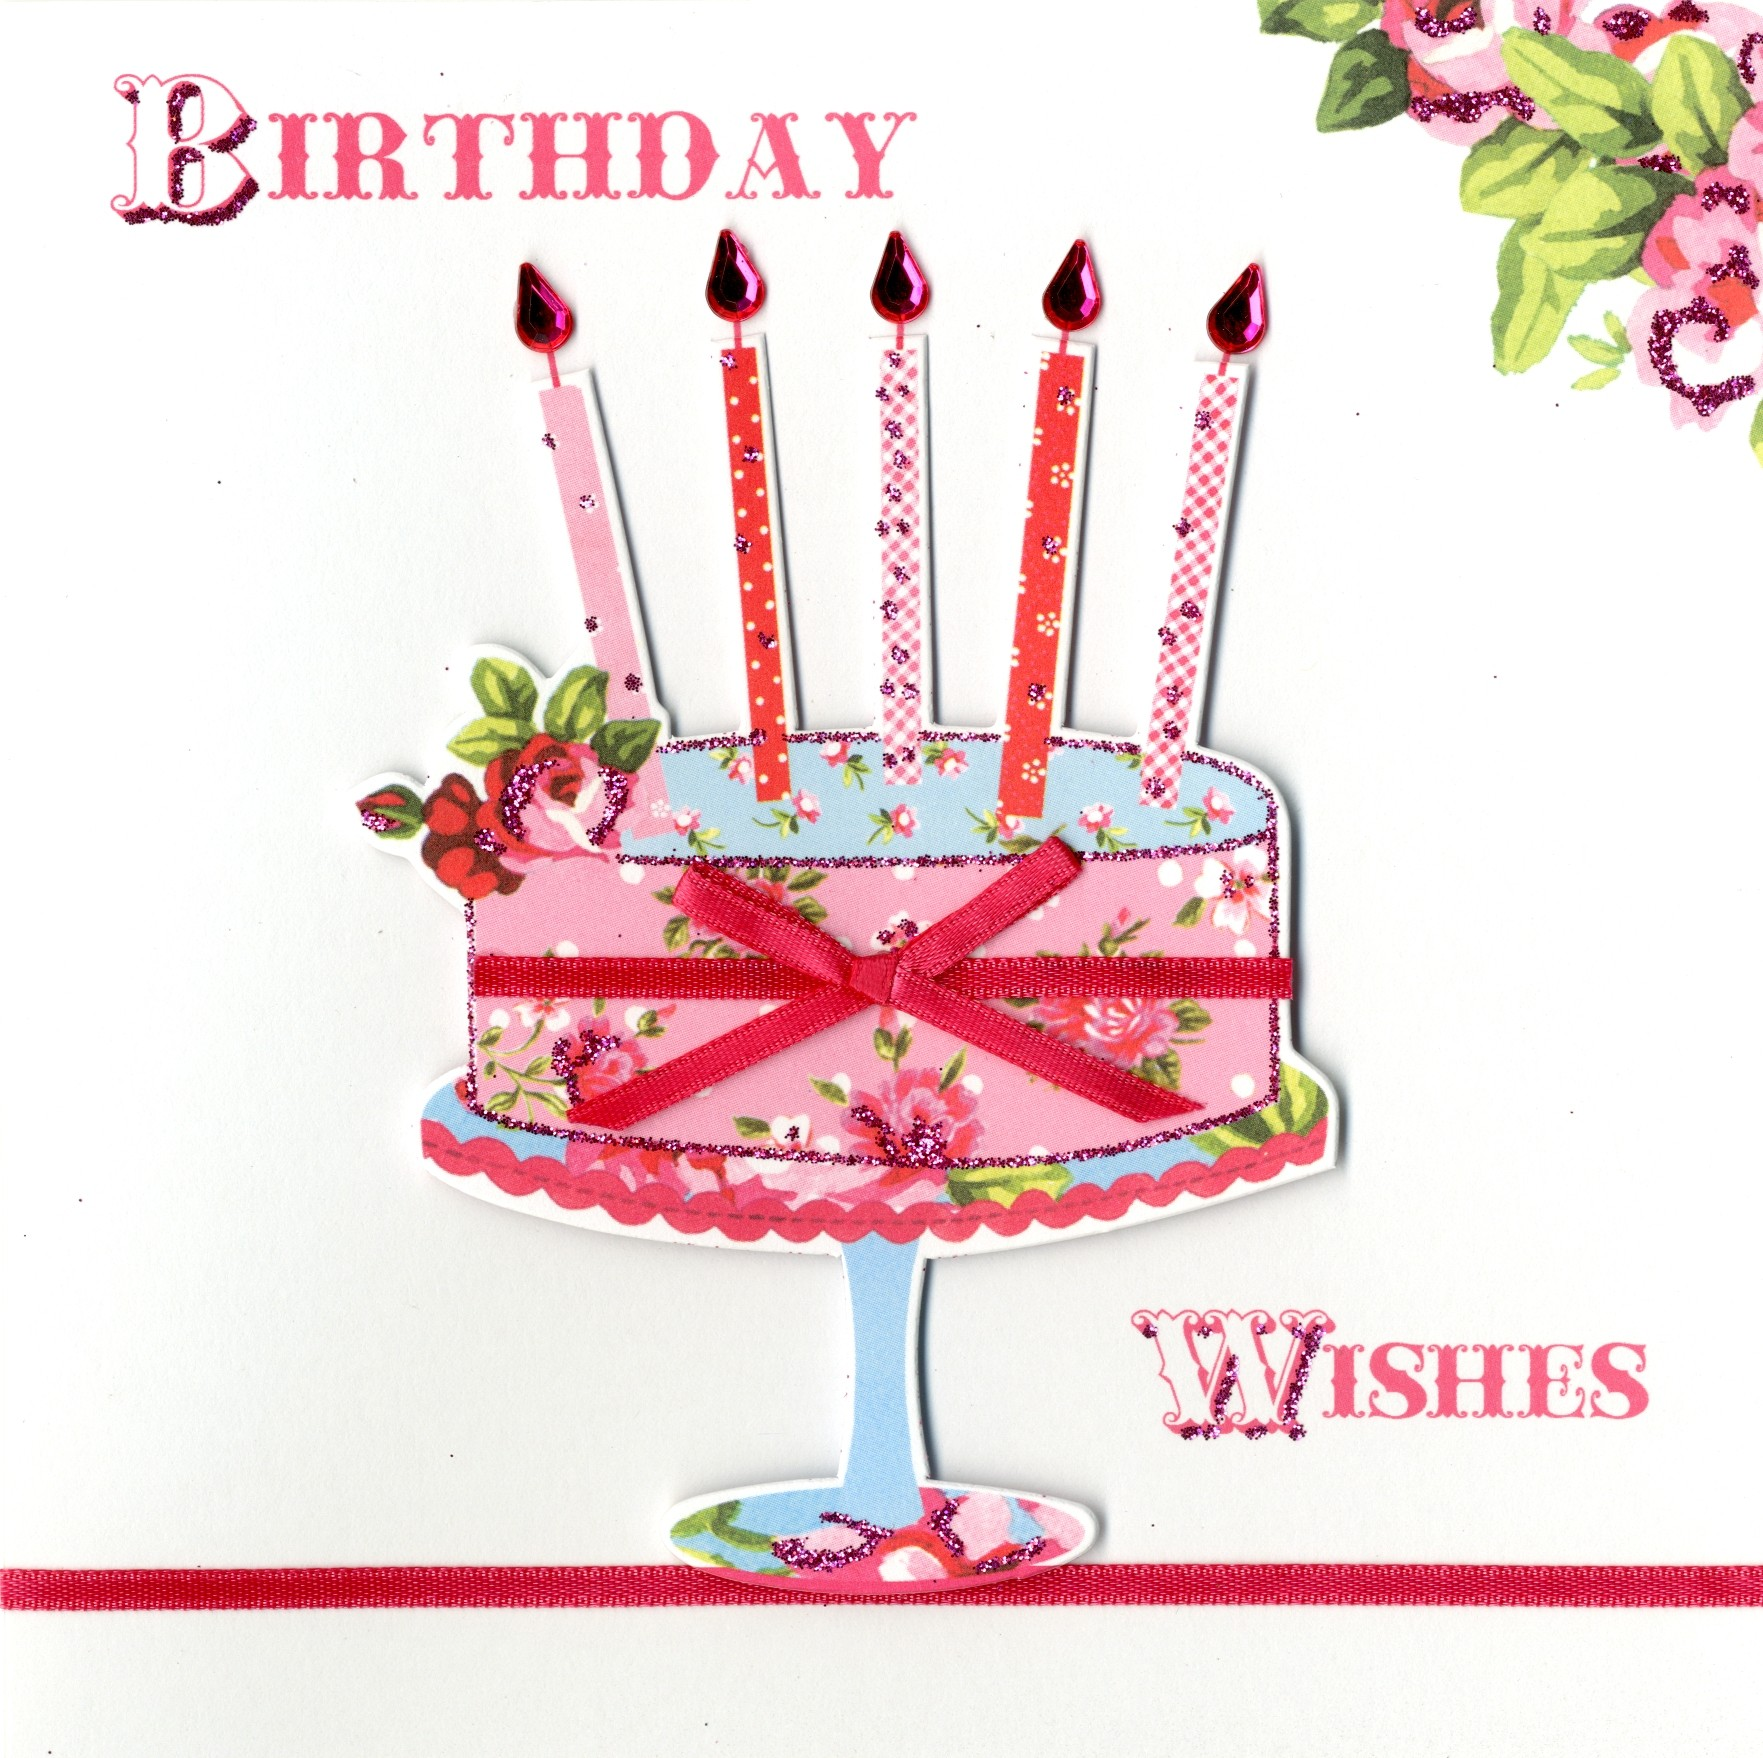 Birthday - 'Open - Cake With Candles' - SORRY OUT OF STOCK